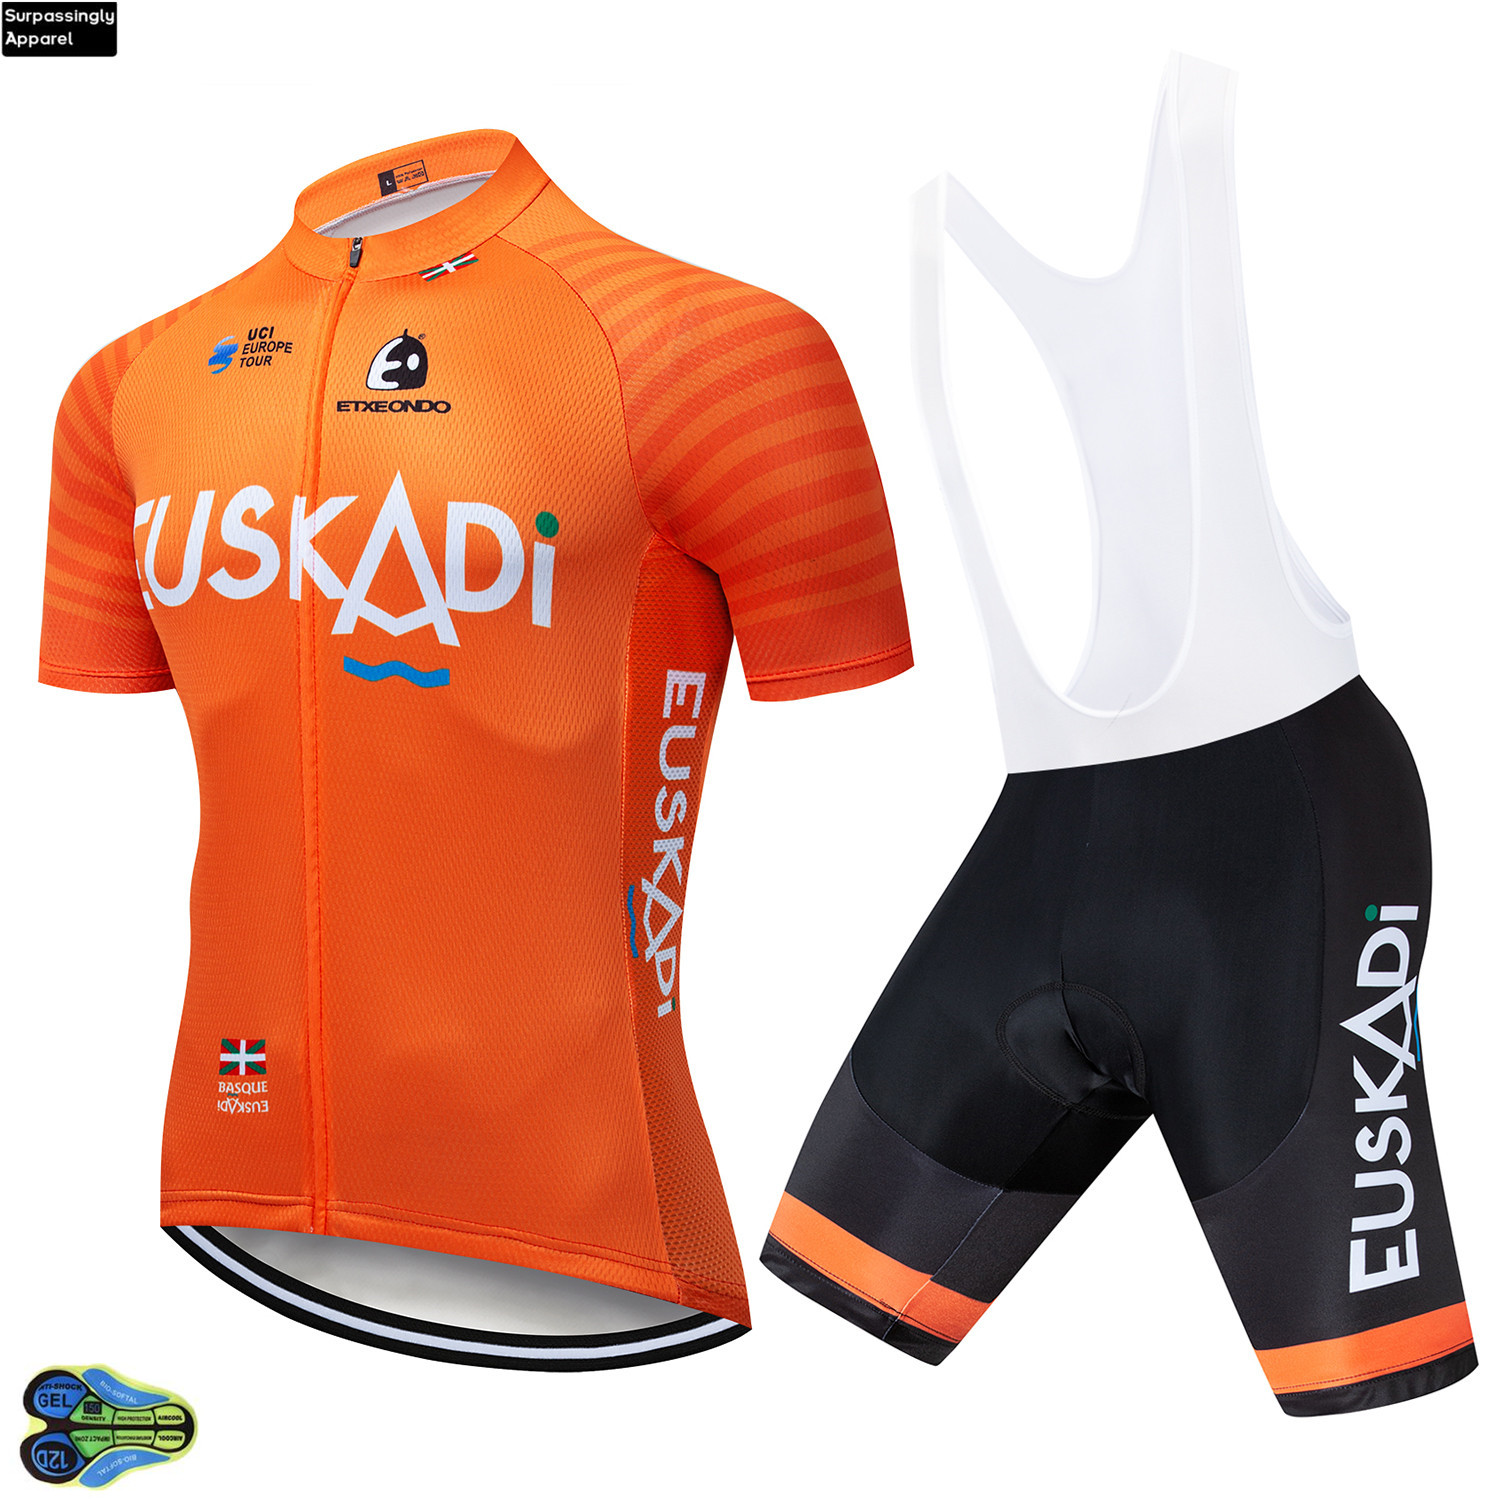 2019 Summer Team Etxeondo Cycling Jersey Short Sleeve Set Orange Cycling Set 12D Bike Jersey Clothing Ropa Ciclismo Sports Suit